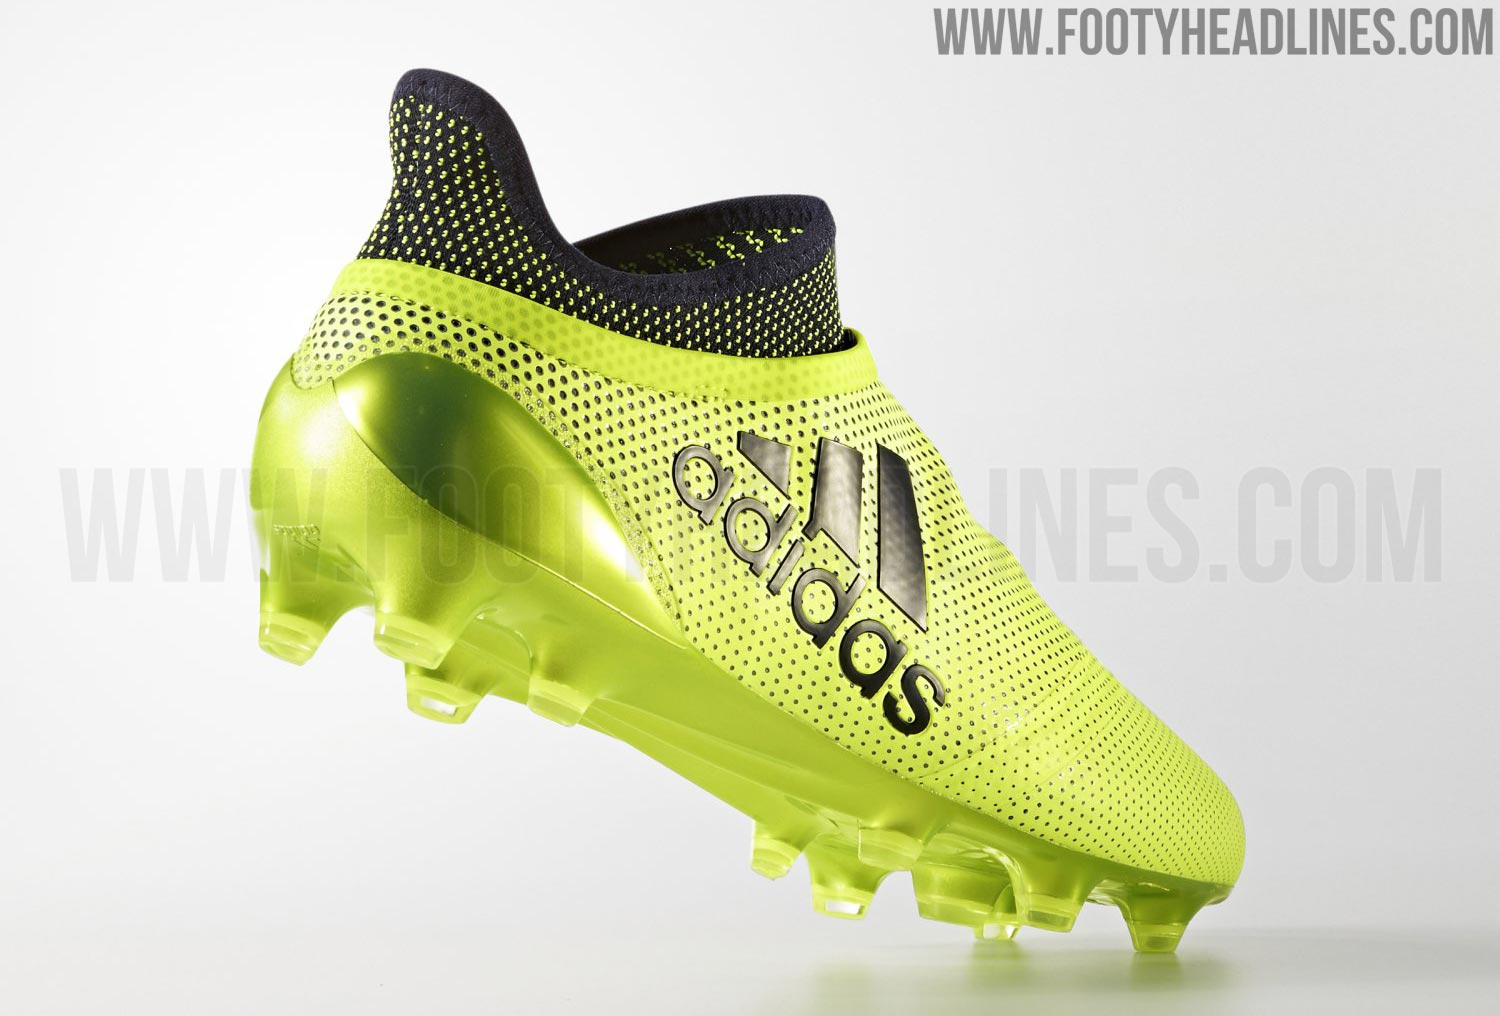 adidas x 17 3. the solar yellow adidas x 17+ purespeed ocean storm cleats will be released on august 3 2017. they retail at eur 300 (gbp 250, usd 300). 17